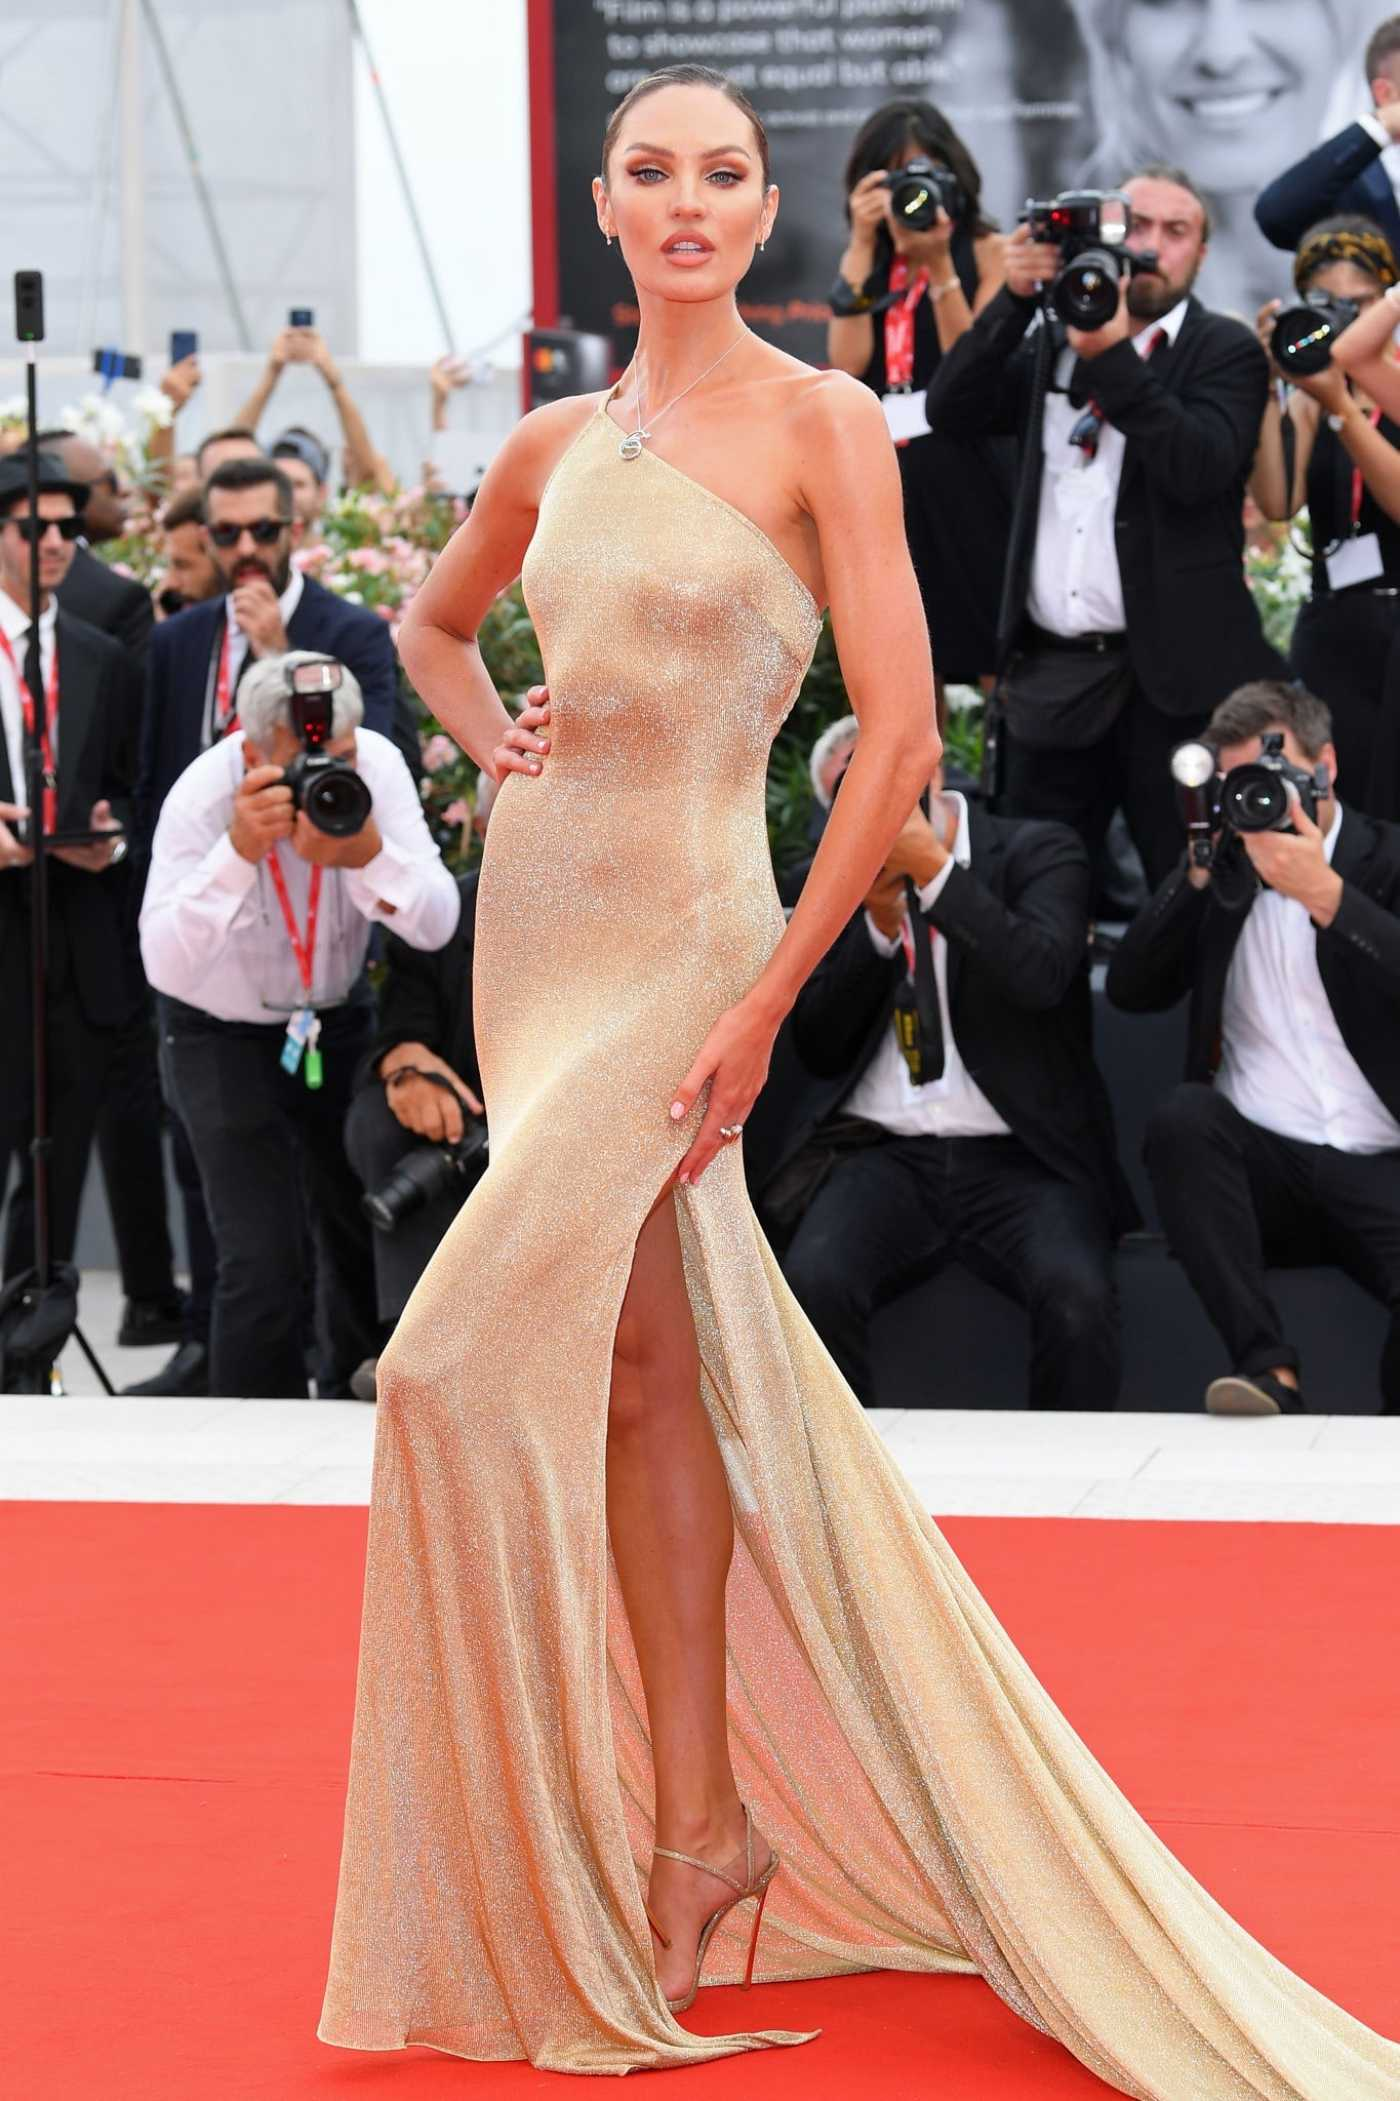 Candice Swanepoel Attends The Truth Screening and Opening Ceremony During the Venice Film Festival in Venice 08/28/2019